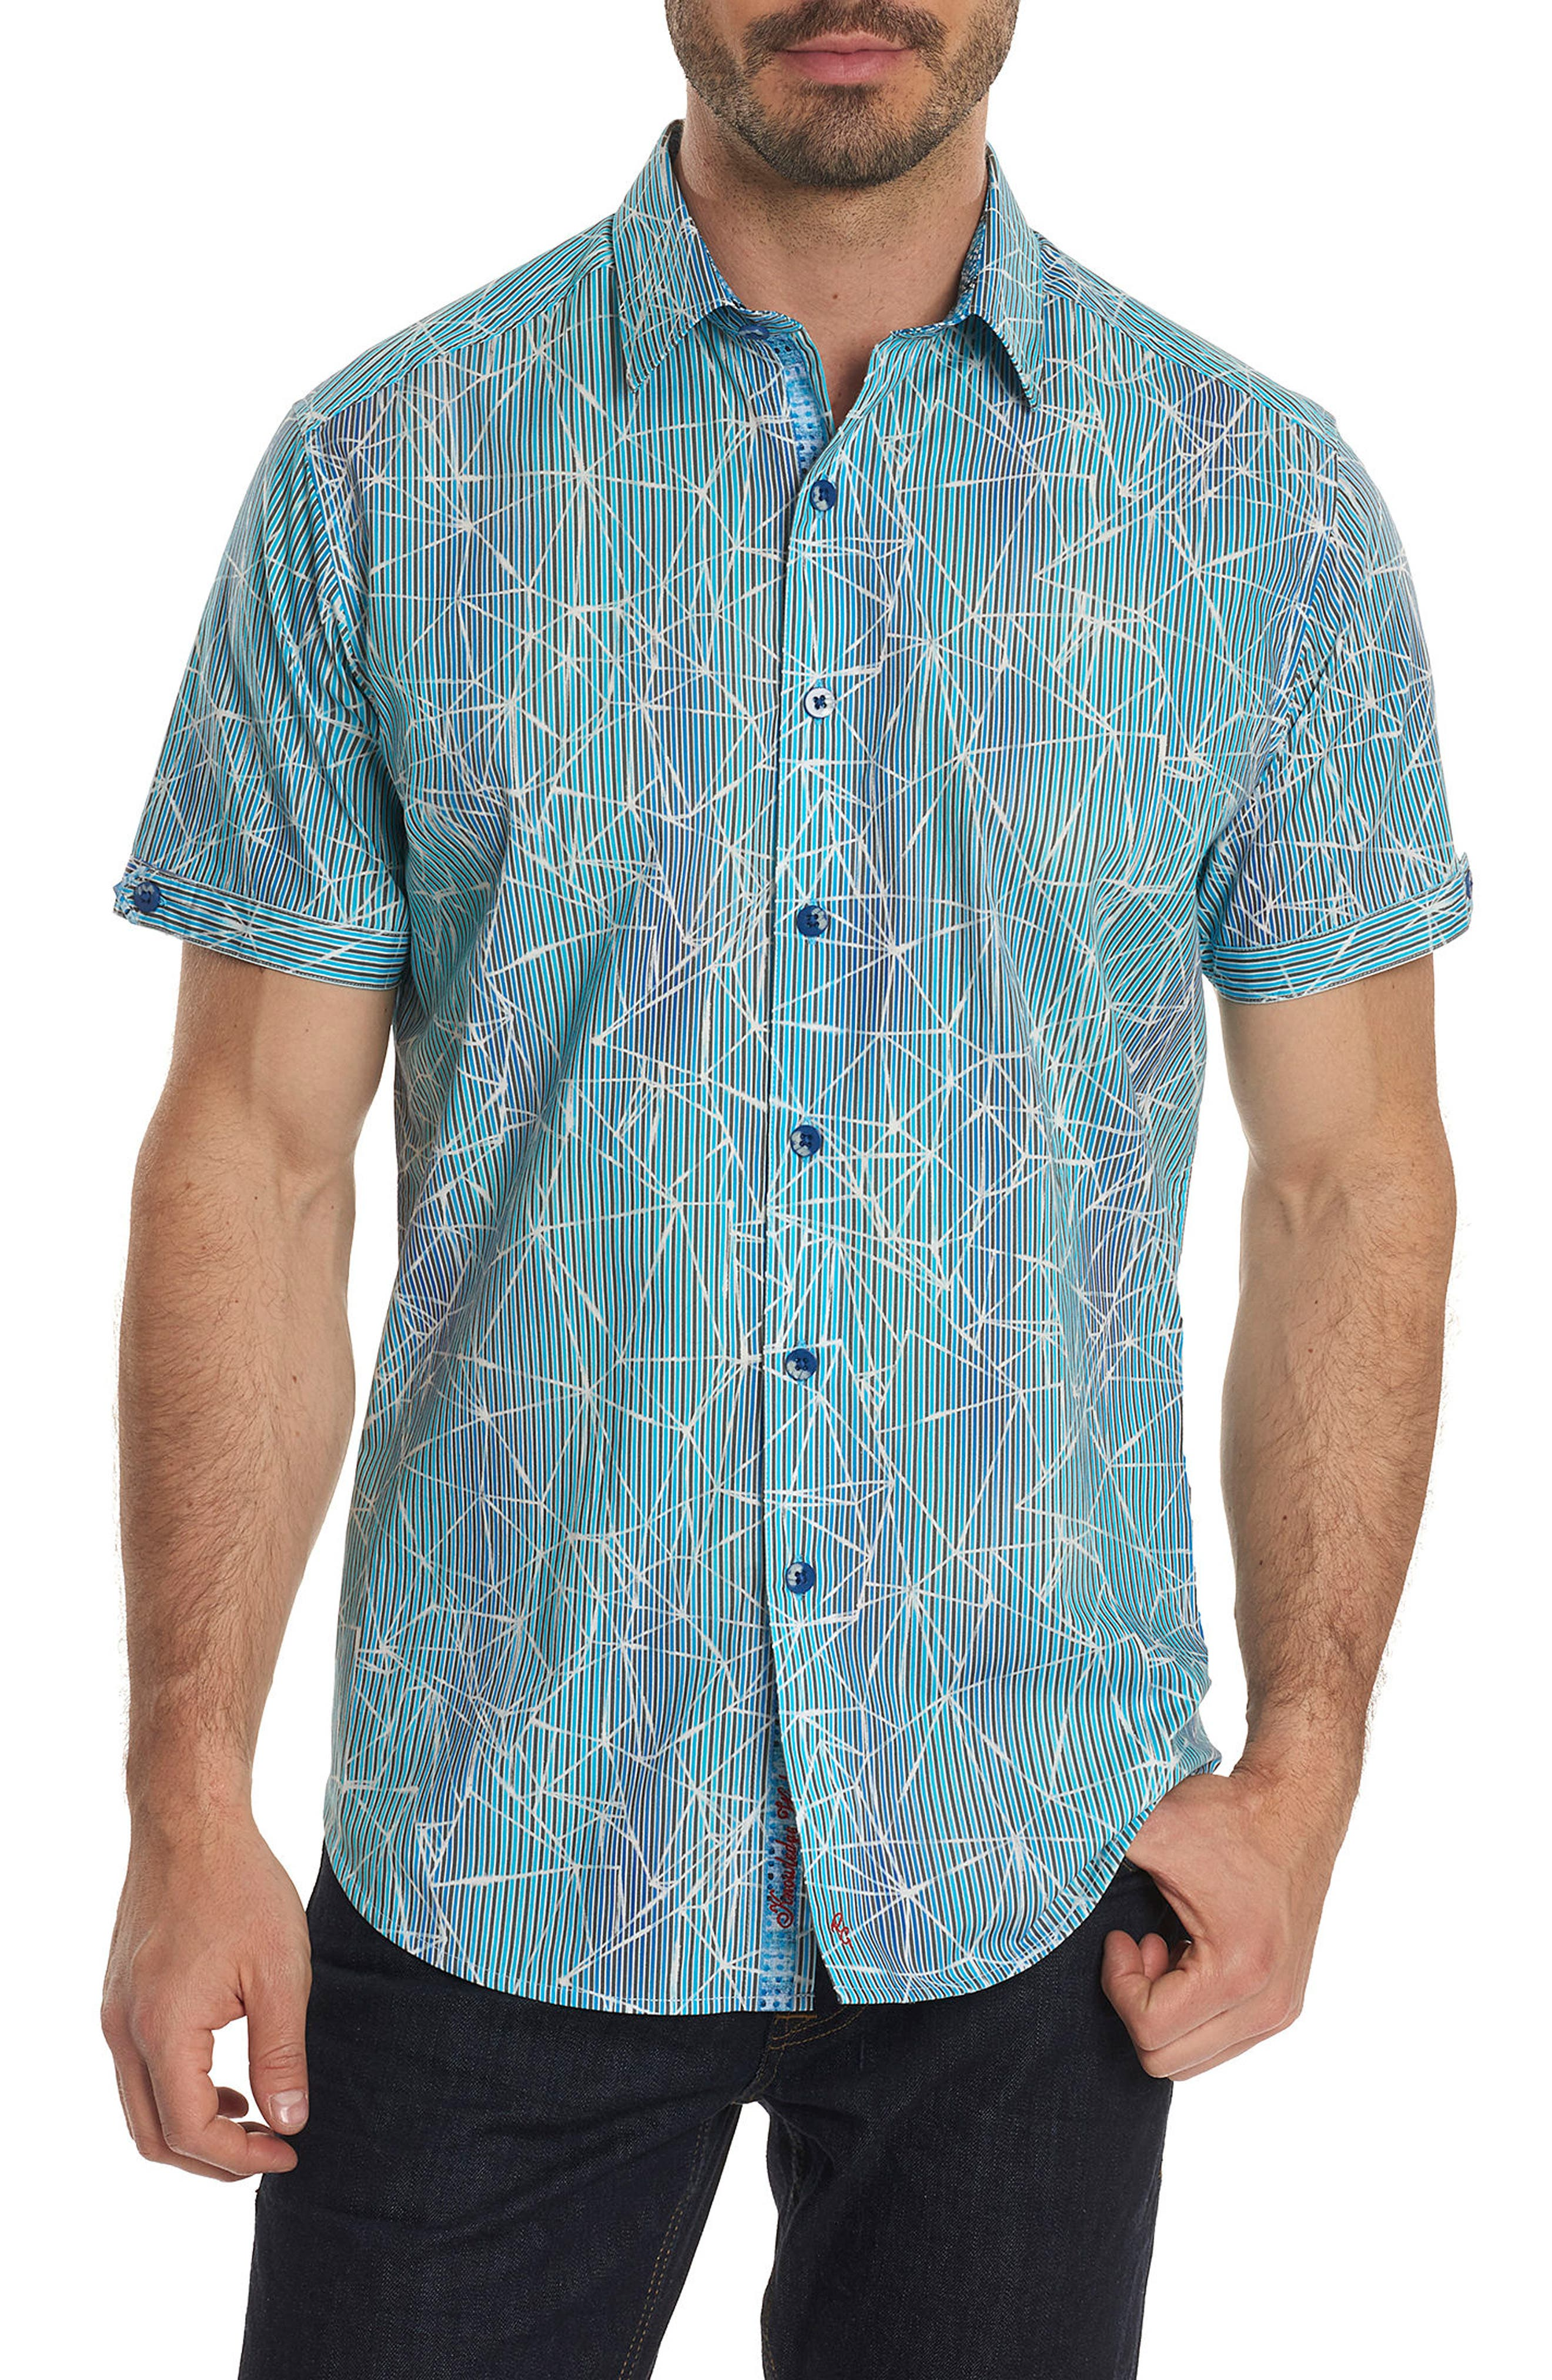 Illusions Print Sport Shirt,                             Main thumbnail 1, color,                             Turquoise